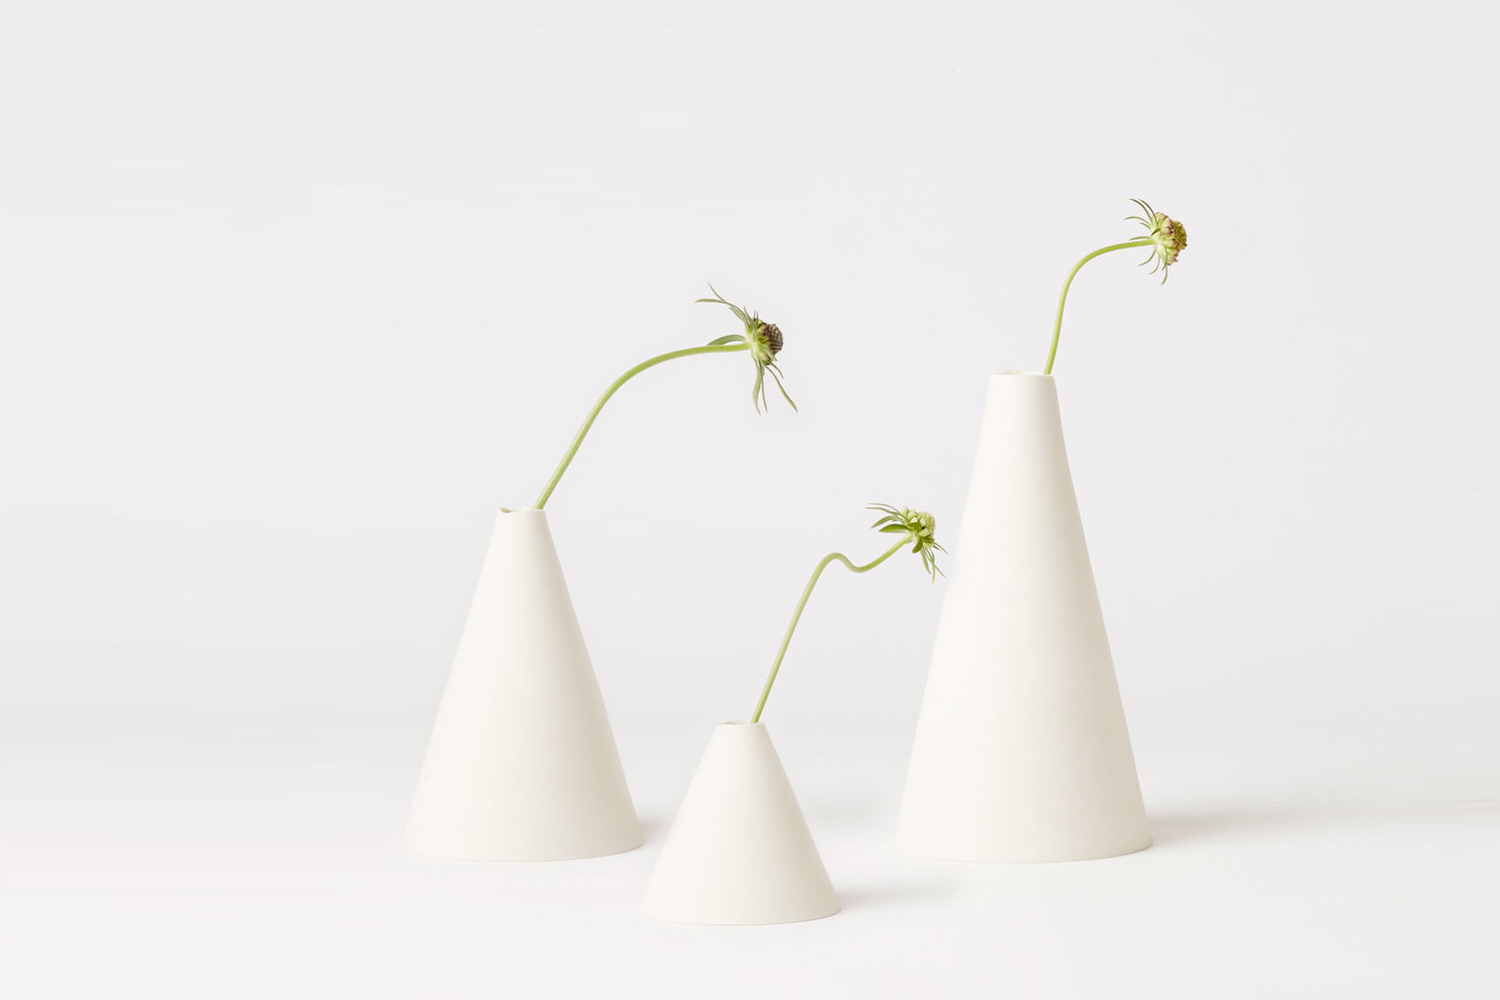 CONE VASES - This series is an interpretation of the classic geometric cone form, thrown on the potter's wheel; their raw strength highlighted by the bare, unglazed exterior and rough rim.Sizes: ranging from 6cm diameter x 9cm H to 10cm diameter x 18cm HAvailable by special orderphoto by Blaise Misiek